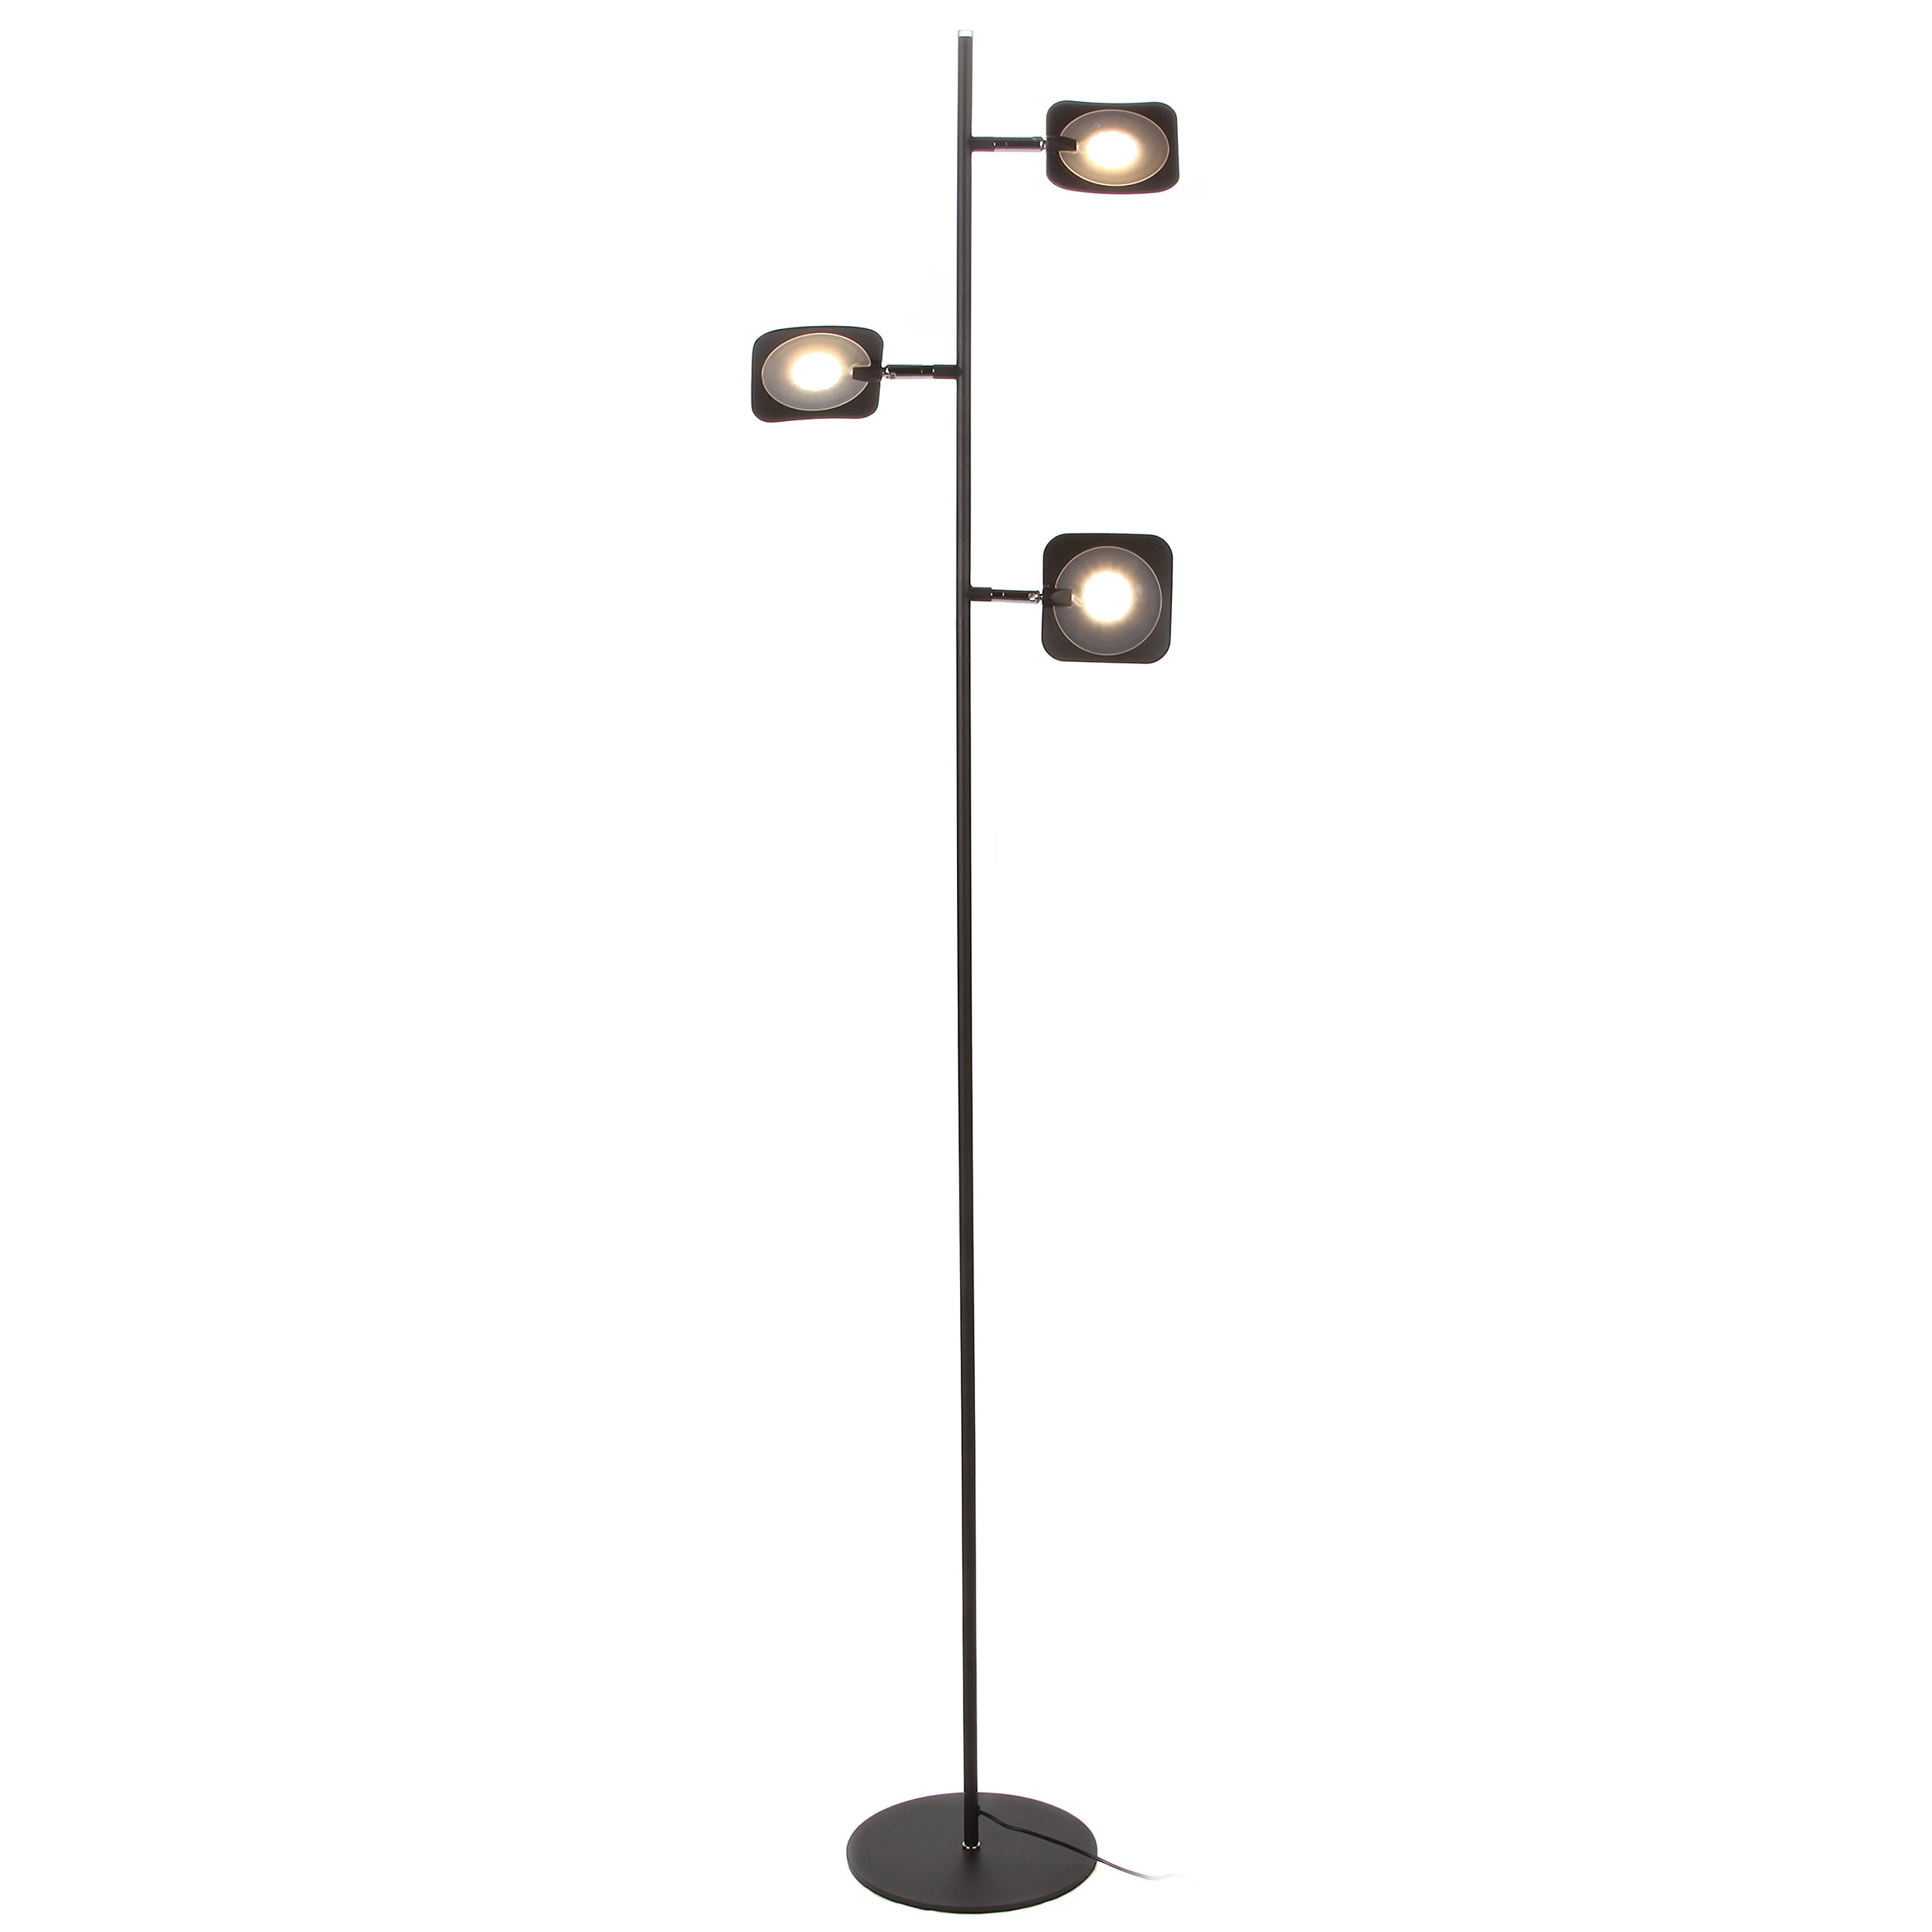 lamps bronze lamp notch standing floors inspirations top light standard for arco floor shades